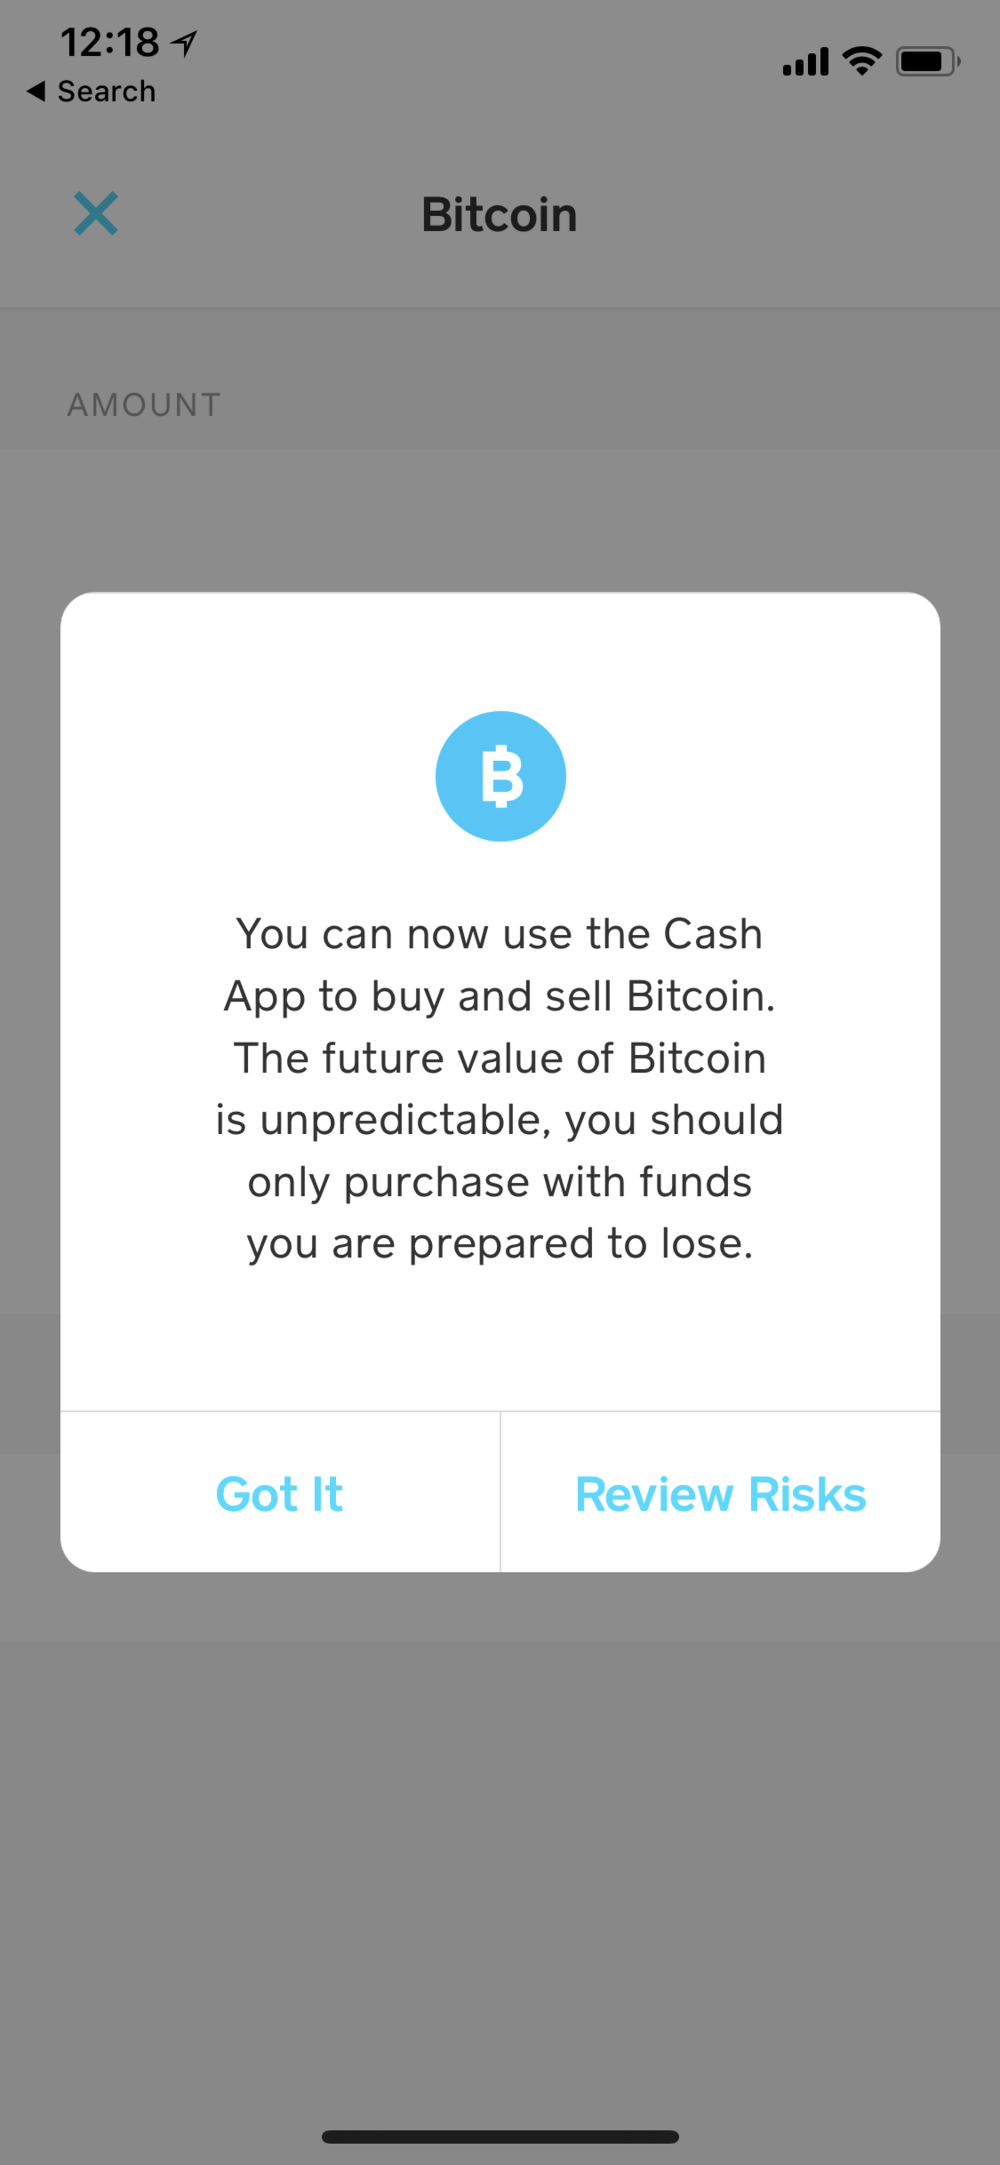 - Square CashApp has opened the capability to buy and sell Bitcoin to all users.